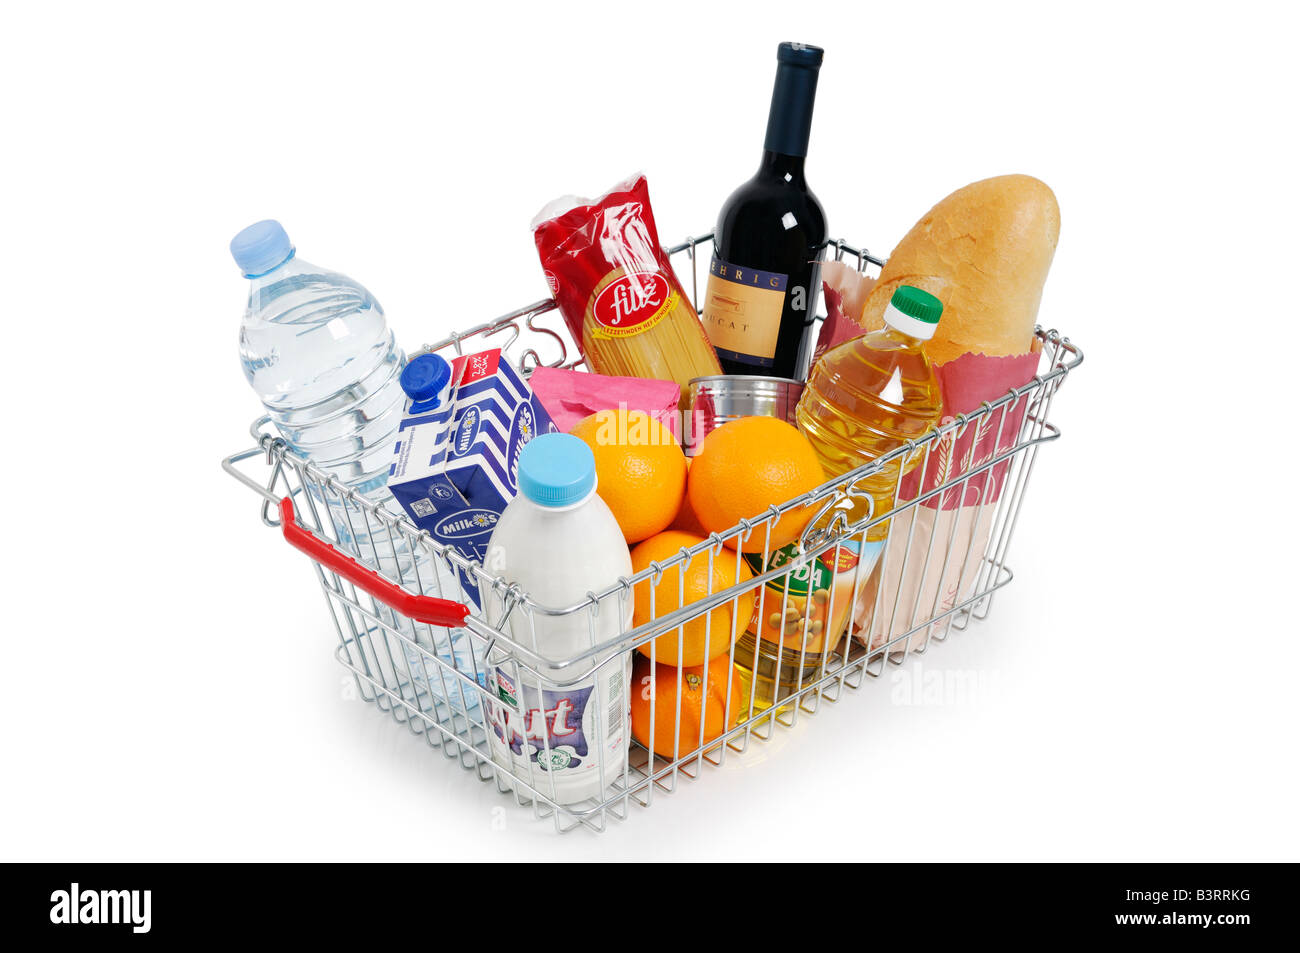 Shopping Basket Full of Groceries - Stock Image